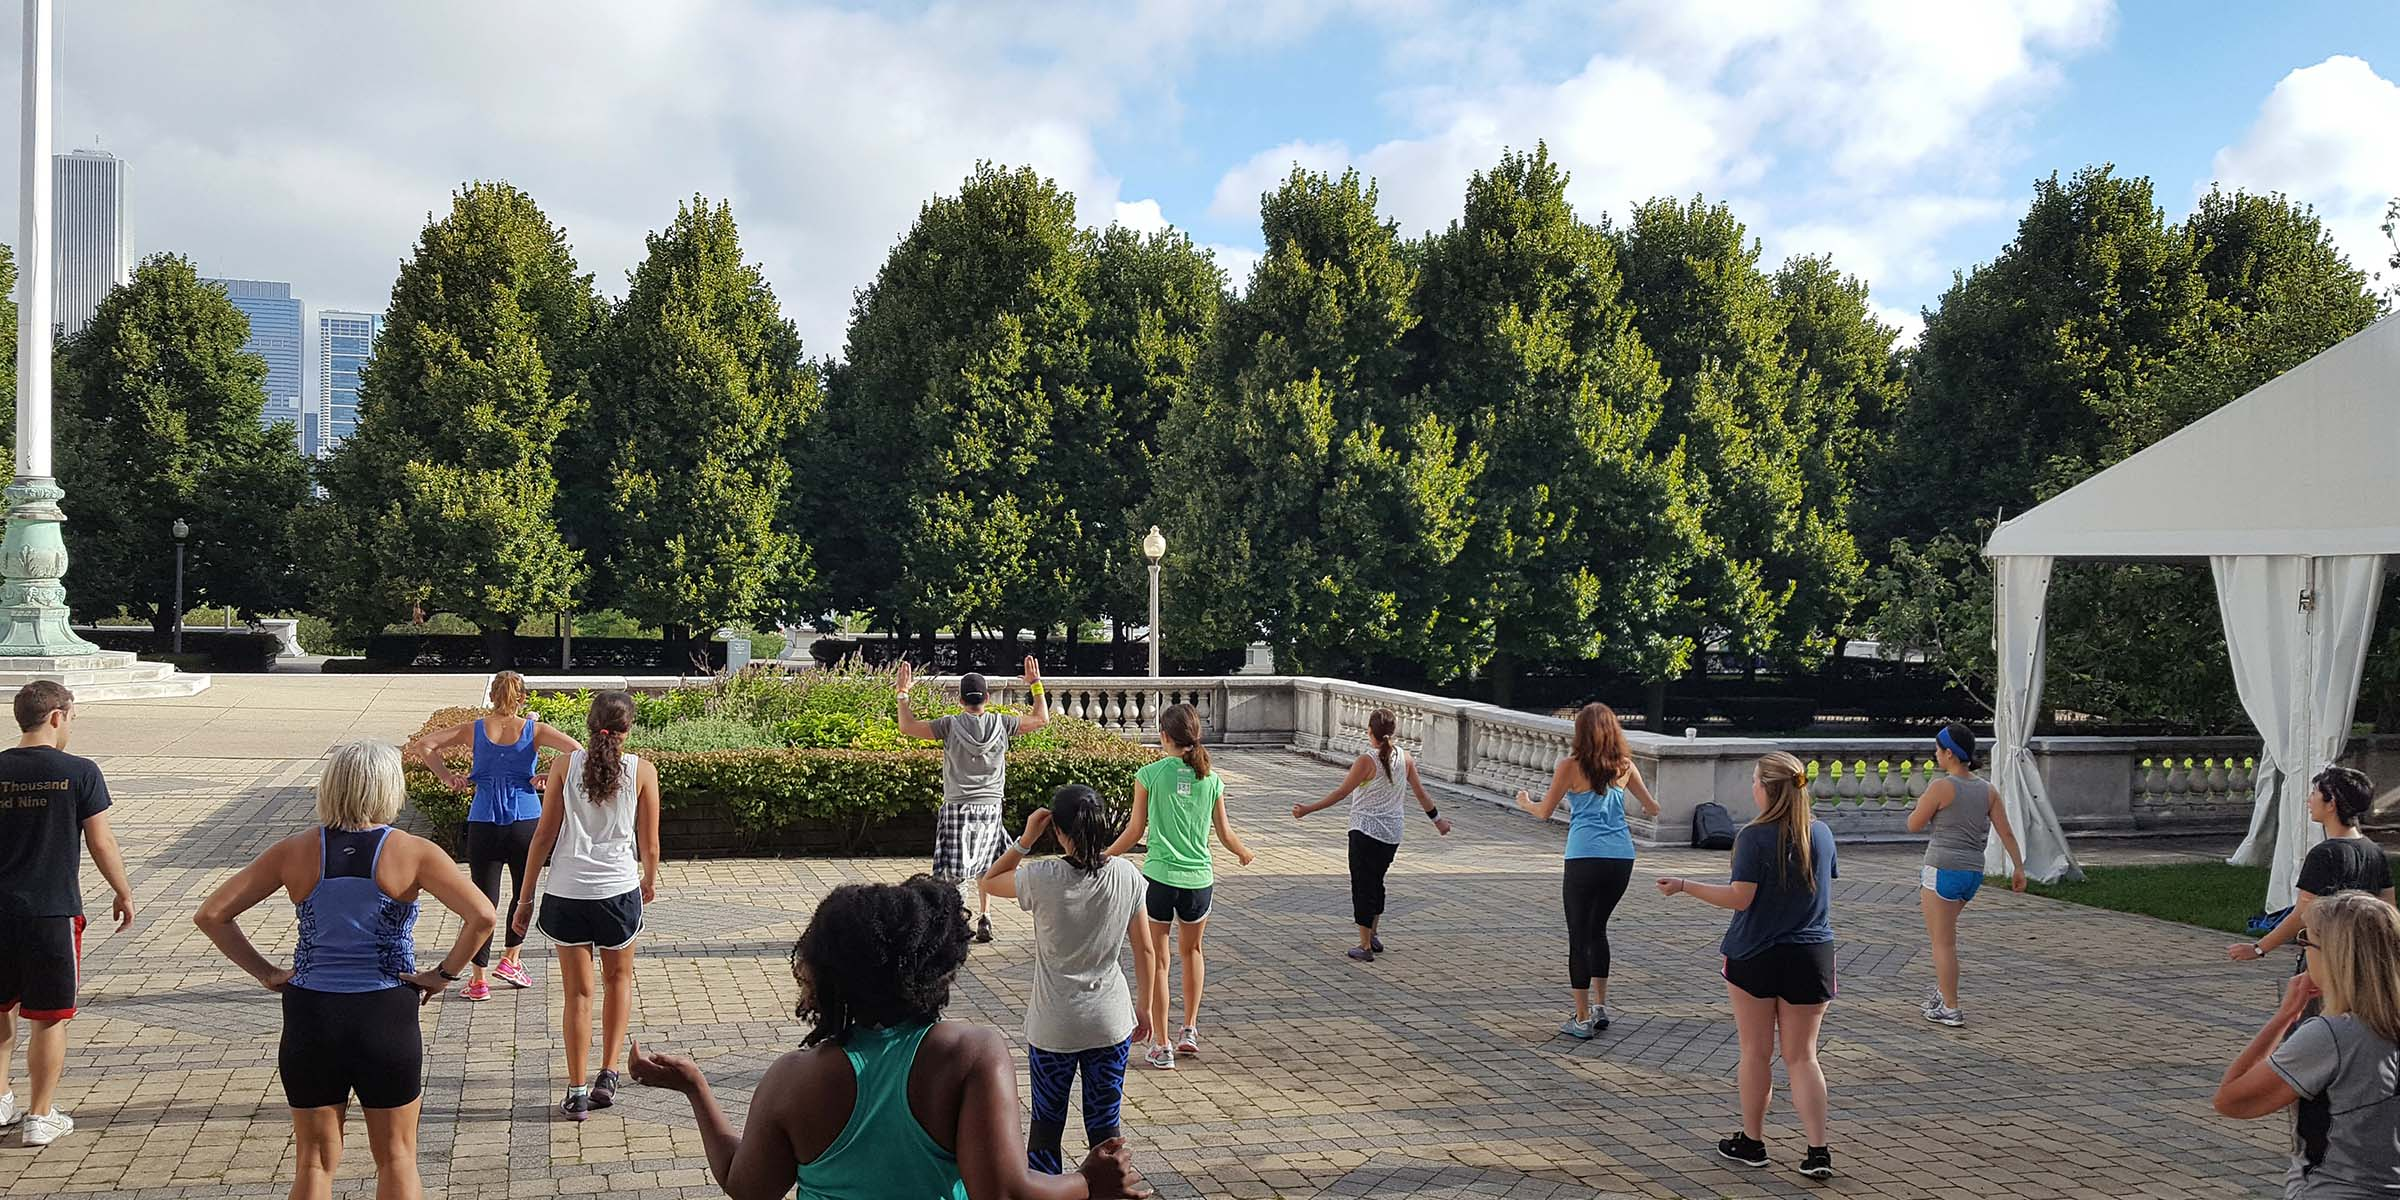 A group of people doing a workout outdoors on a patio with a row of tall trees in the background